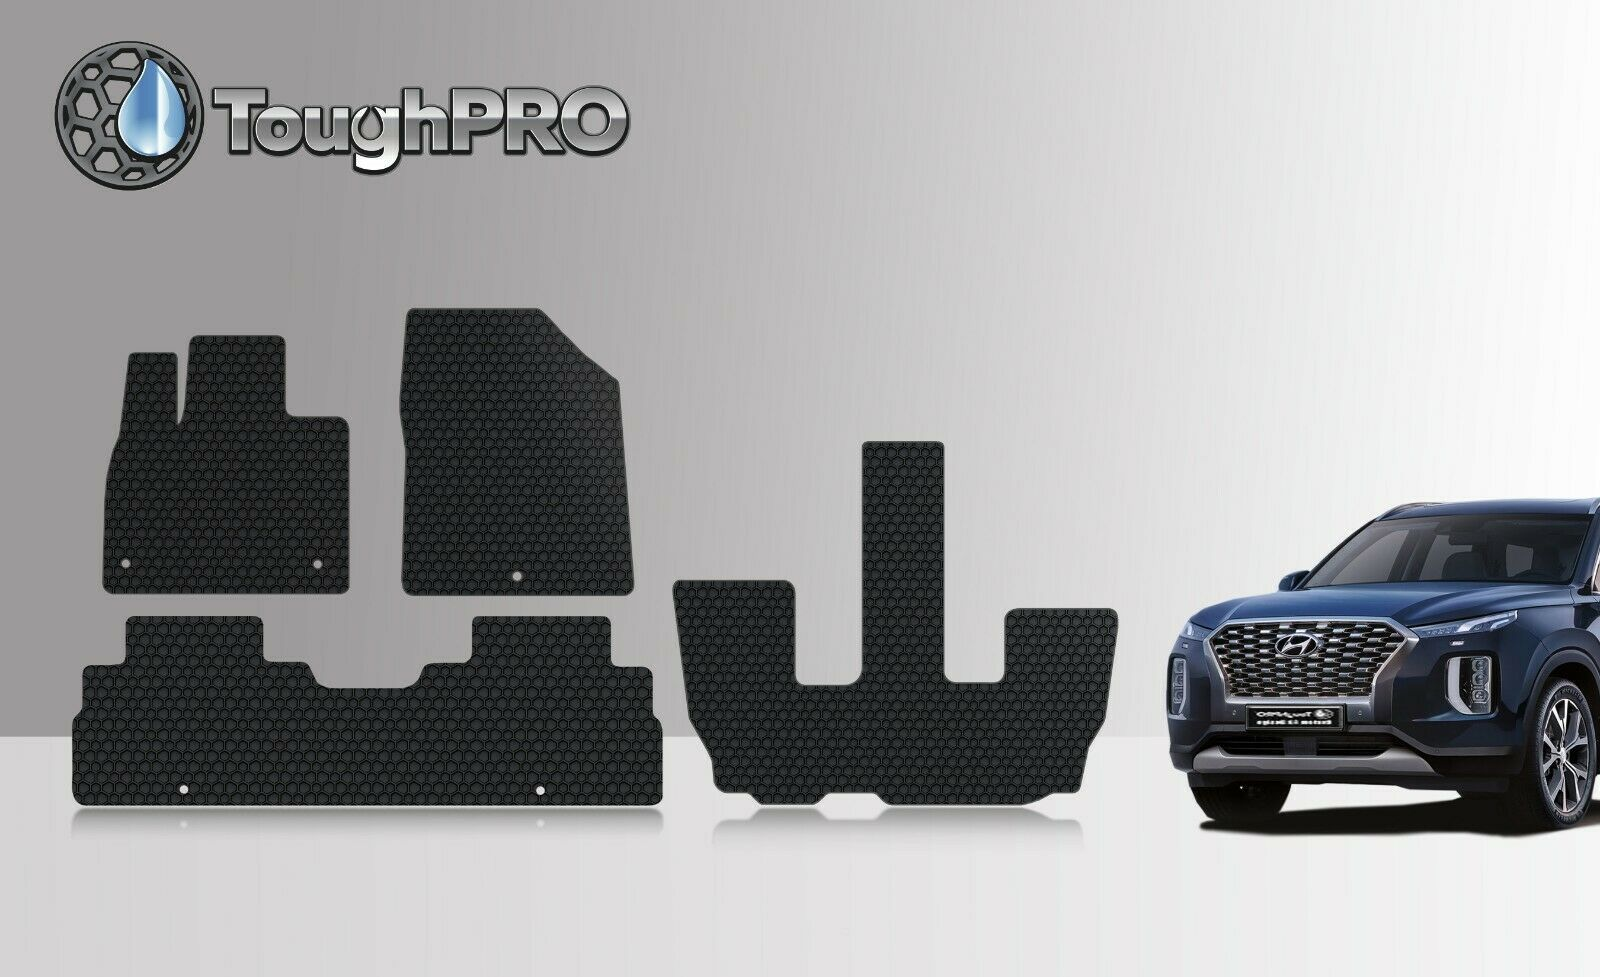 Details about ToughPRO Floor Mats + 3rd Row Black For